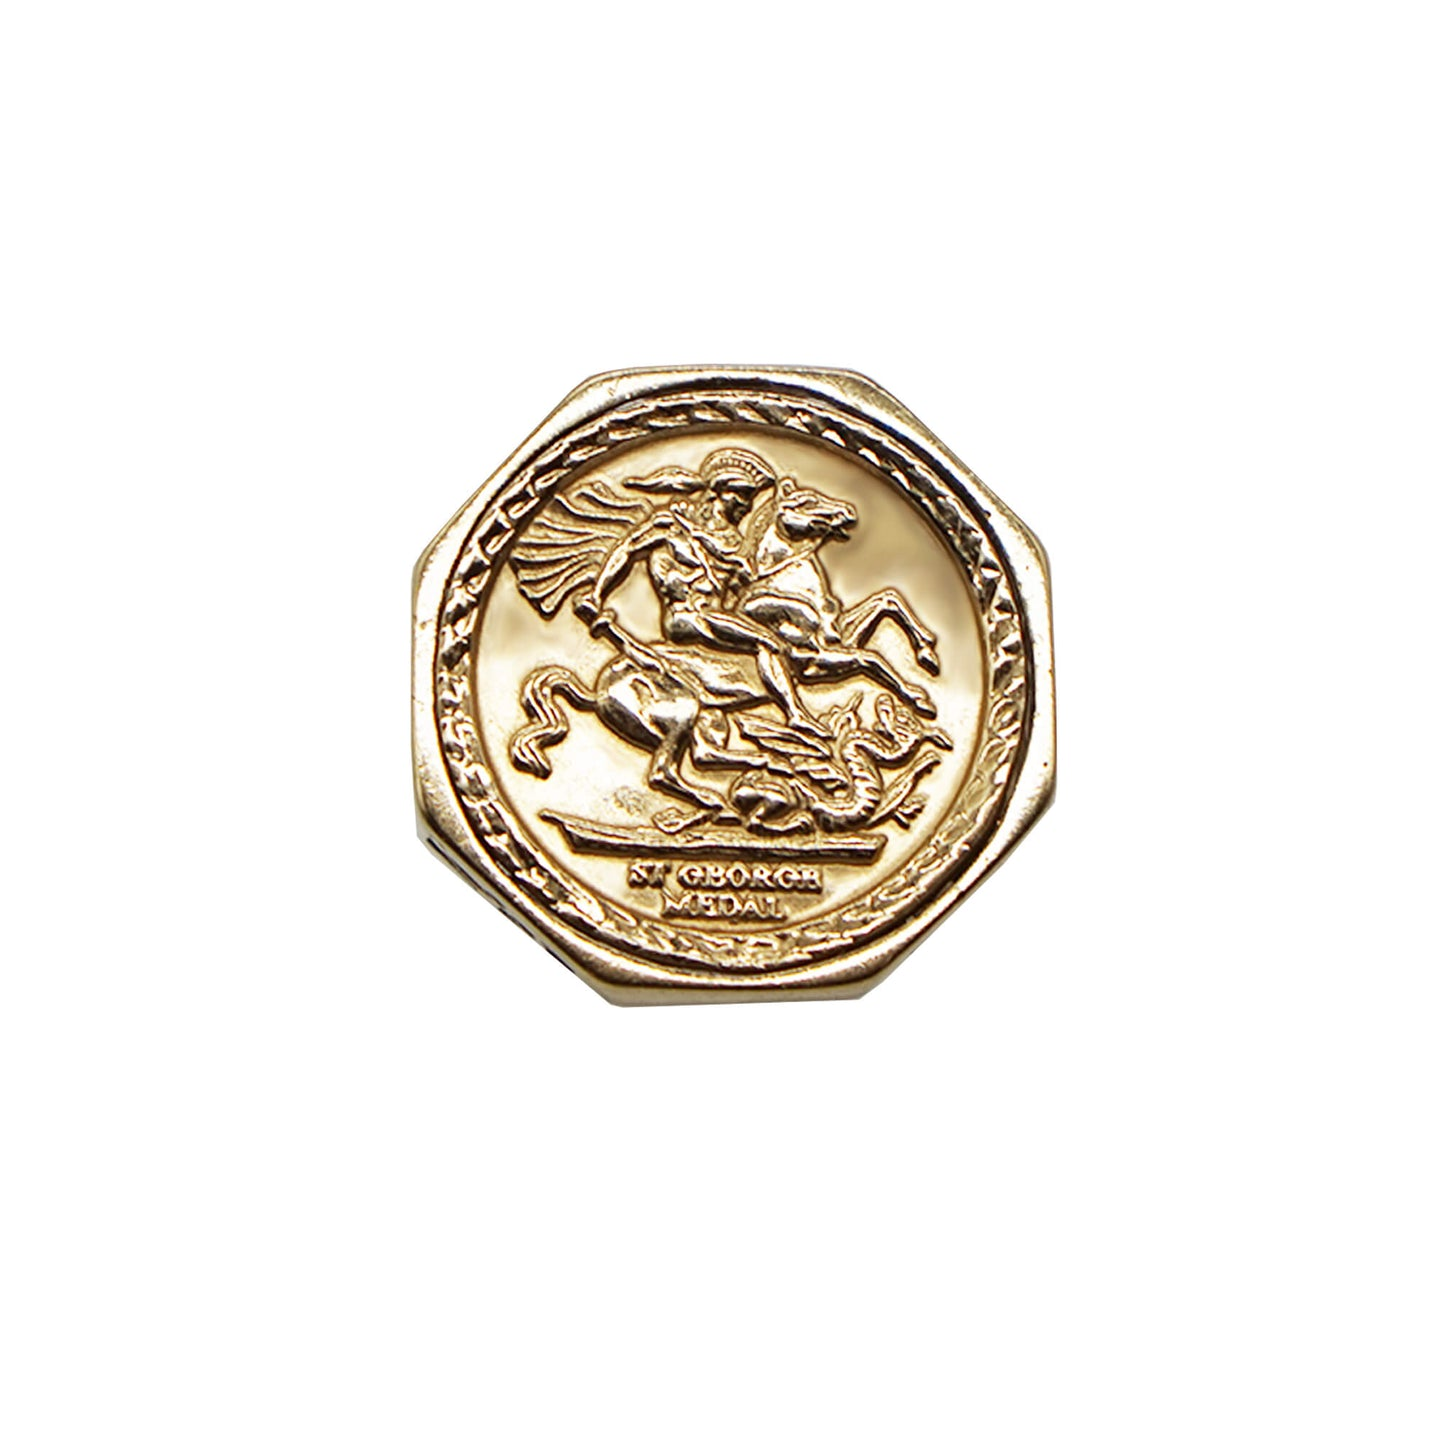 Close up of the face of the ring- Octagon shaped Vintage 9K Gold St.George Sovereign Style ring, on the face it reads 'St George Medal'. White background